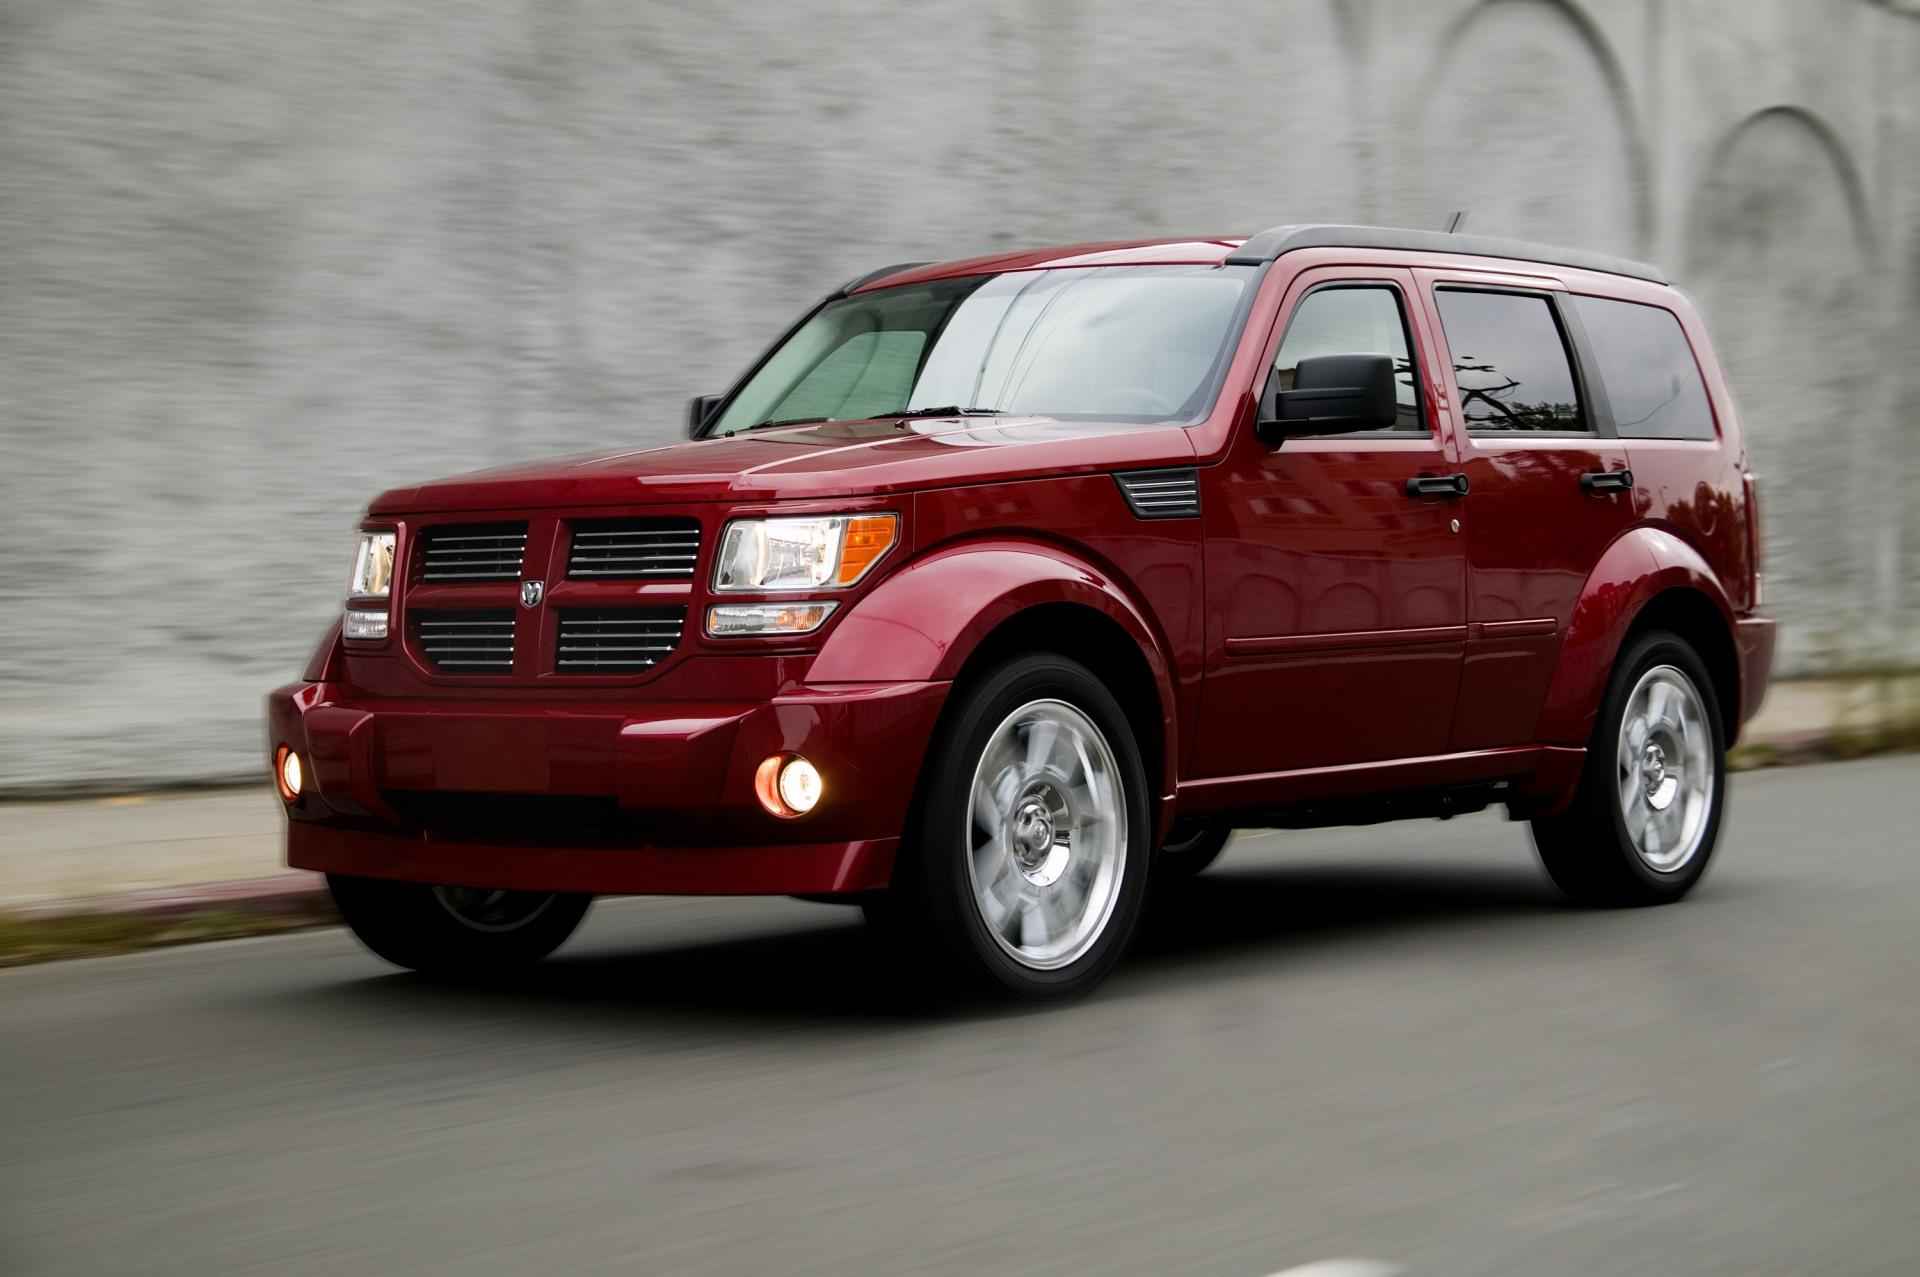 2008 Dodge Caliber Concept photo - 6